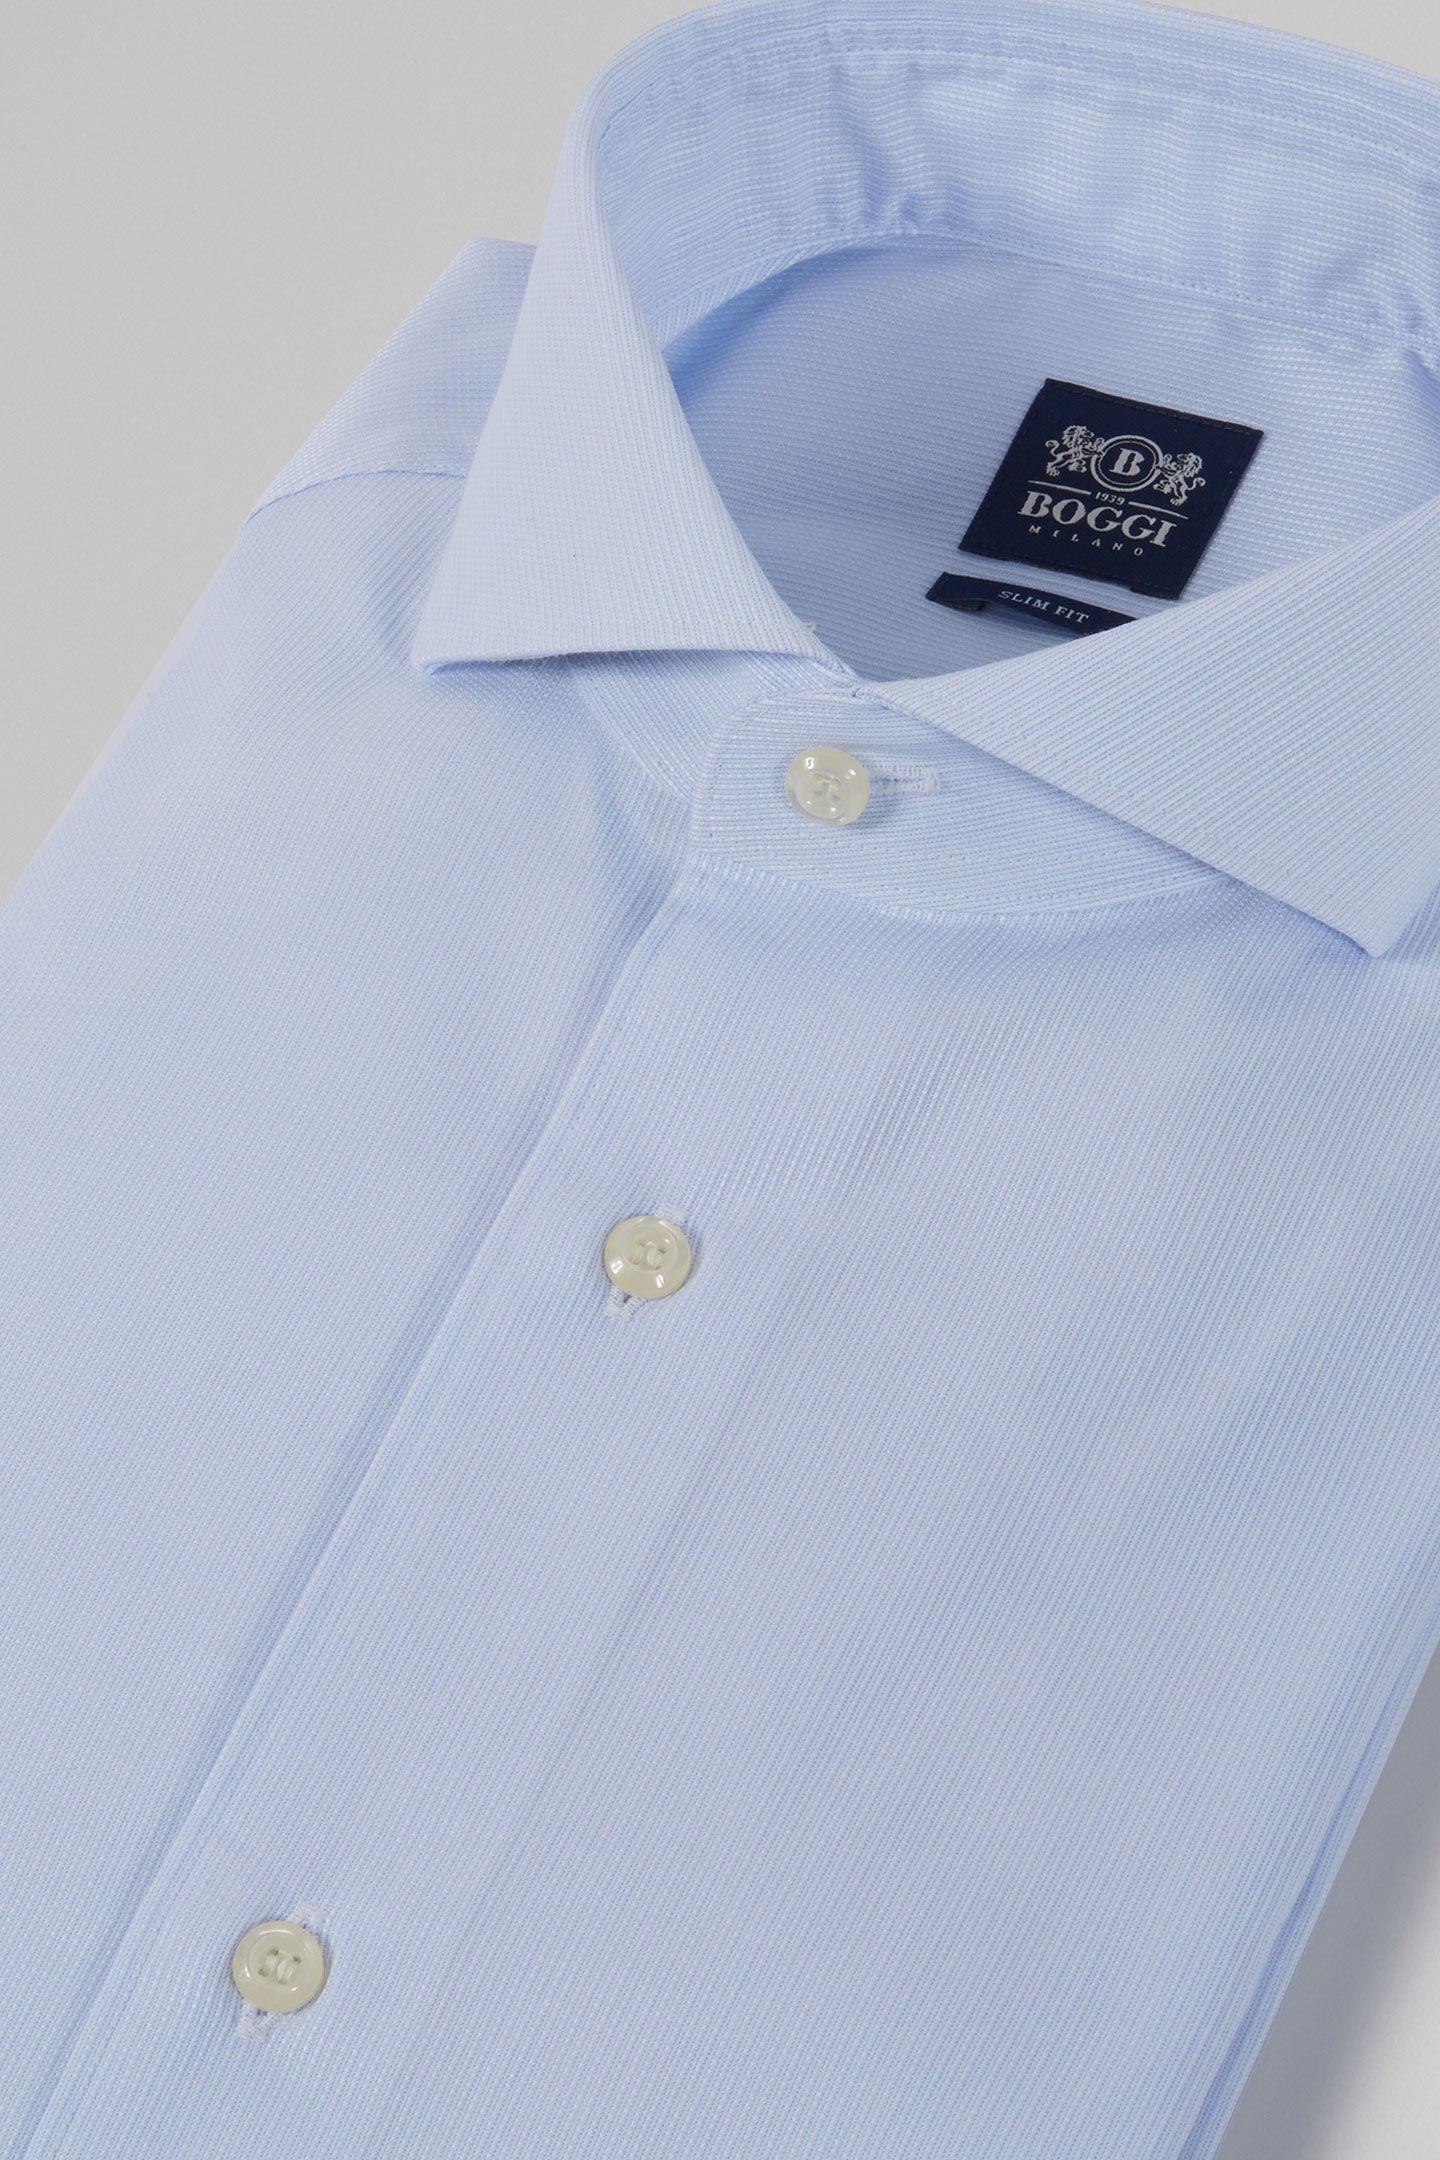 SLIM FIT BLUE SHIRT WITH NAPLES COLLAR, LIGHT BLUE, small ...